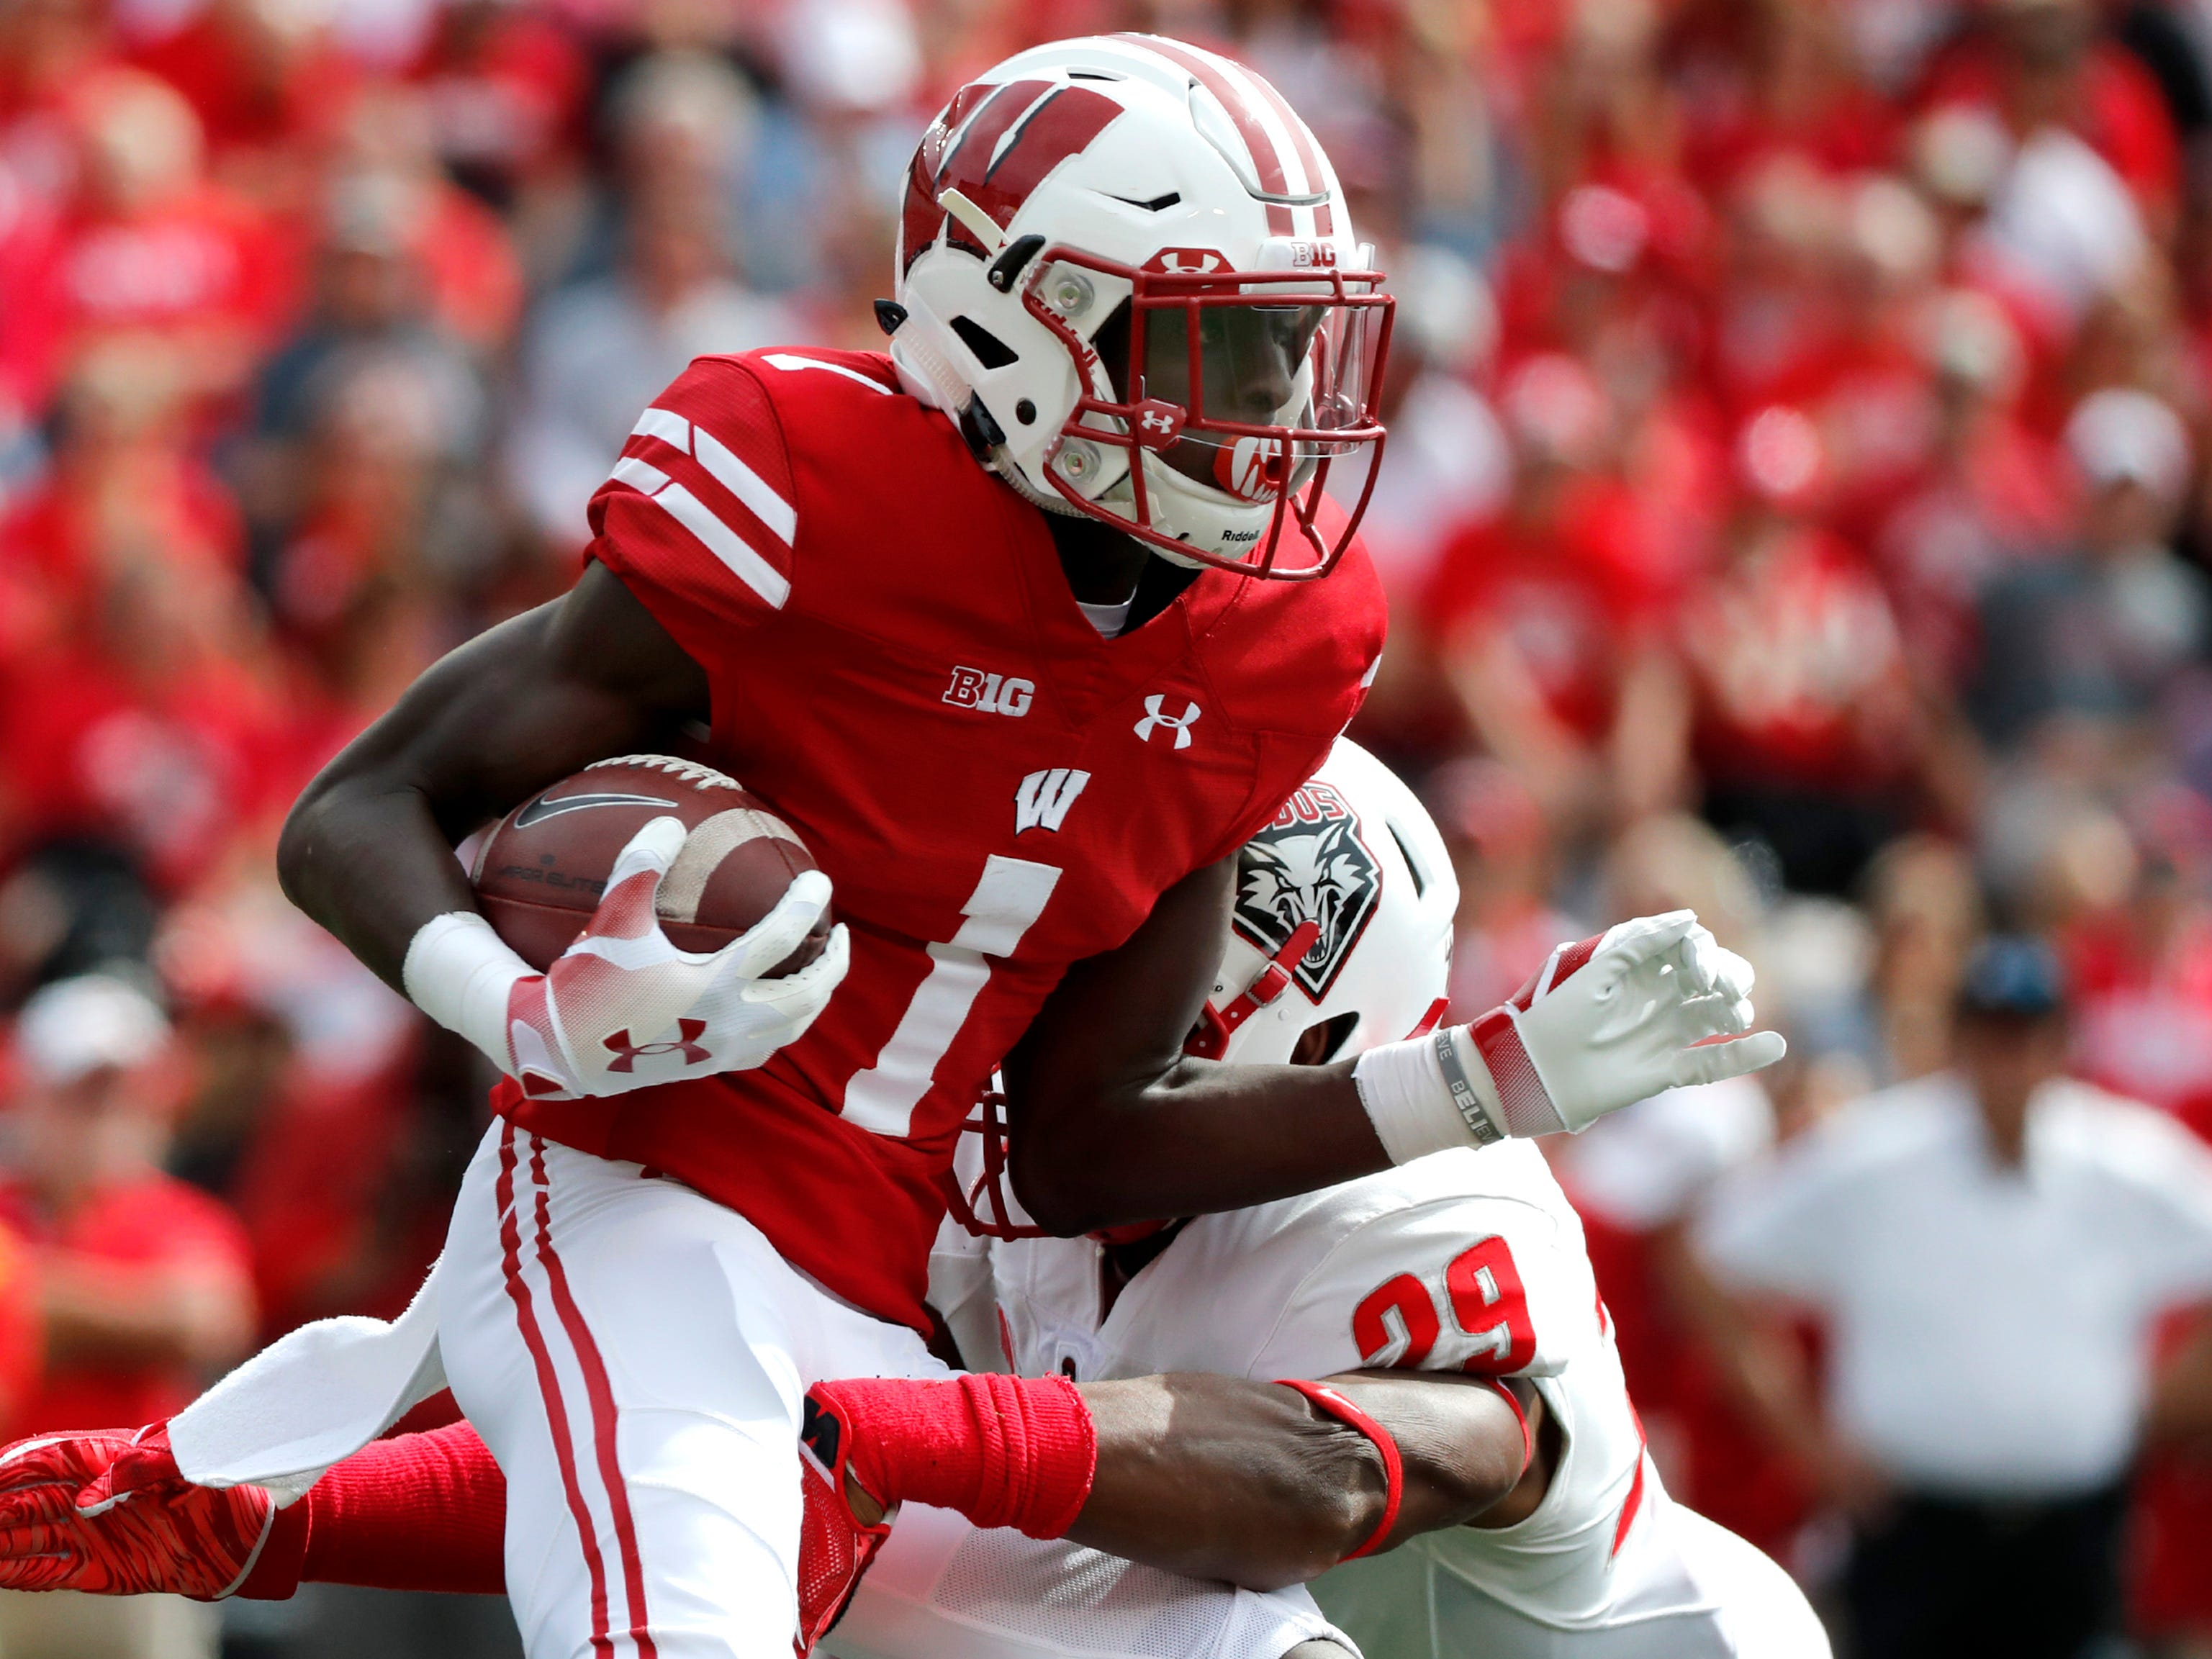 Wisconsin wide receiver Aron Cruickshank tries to break a tackle.